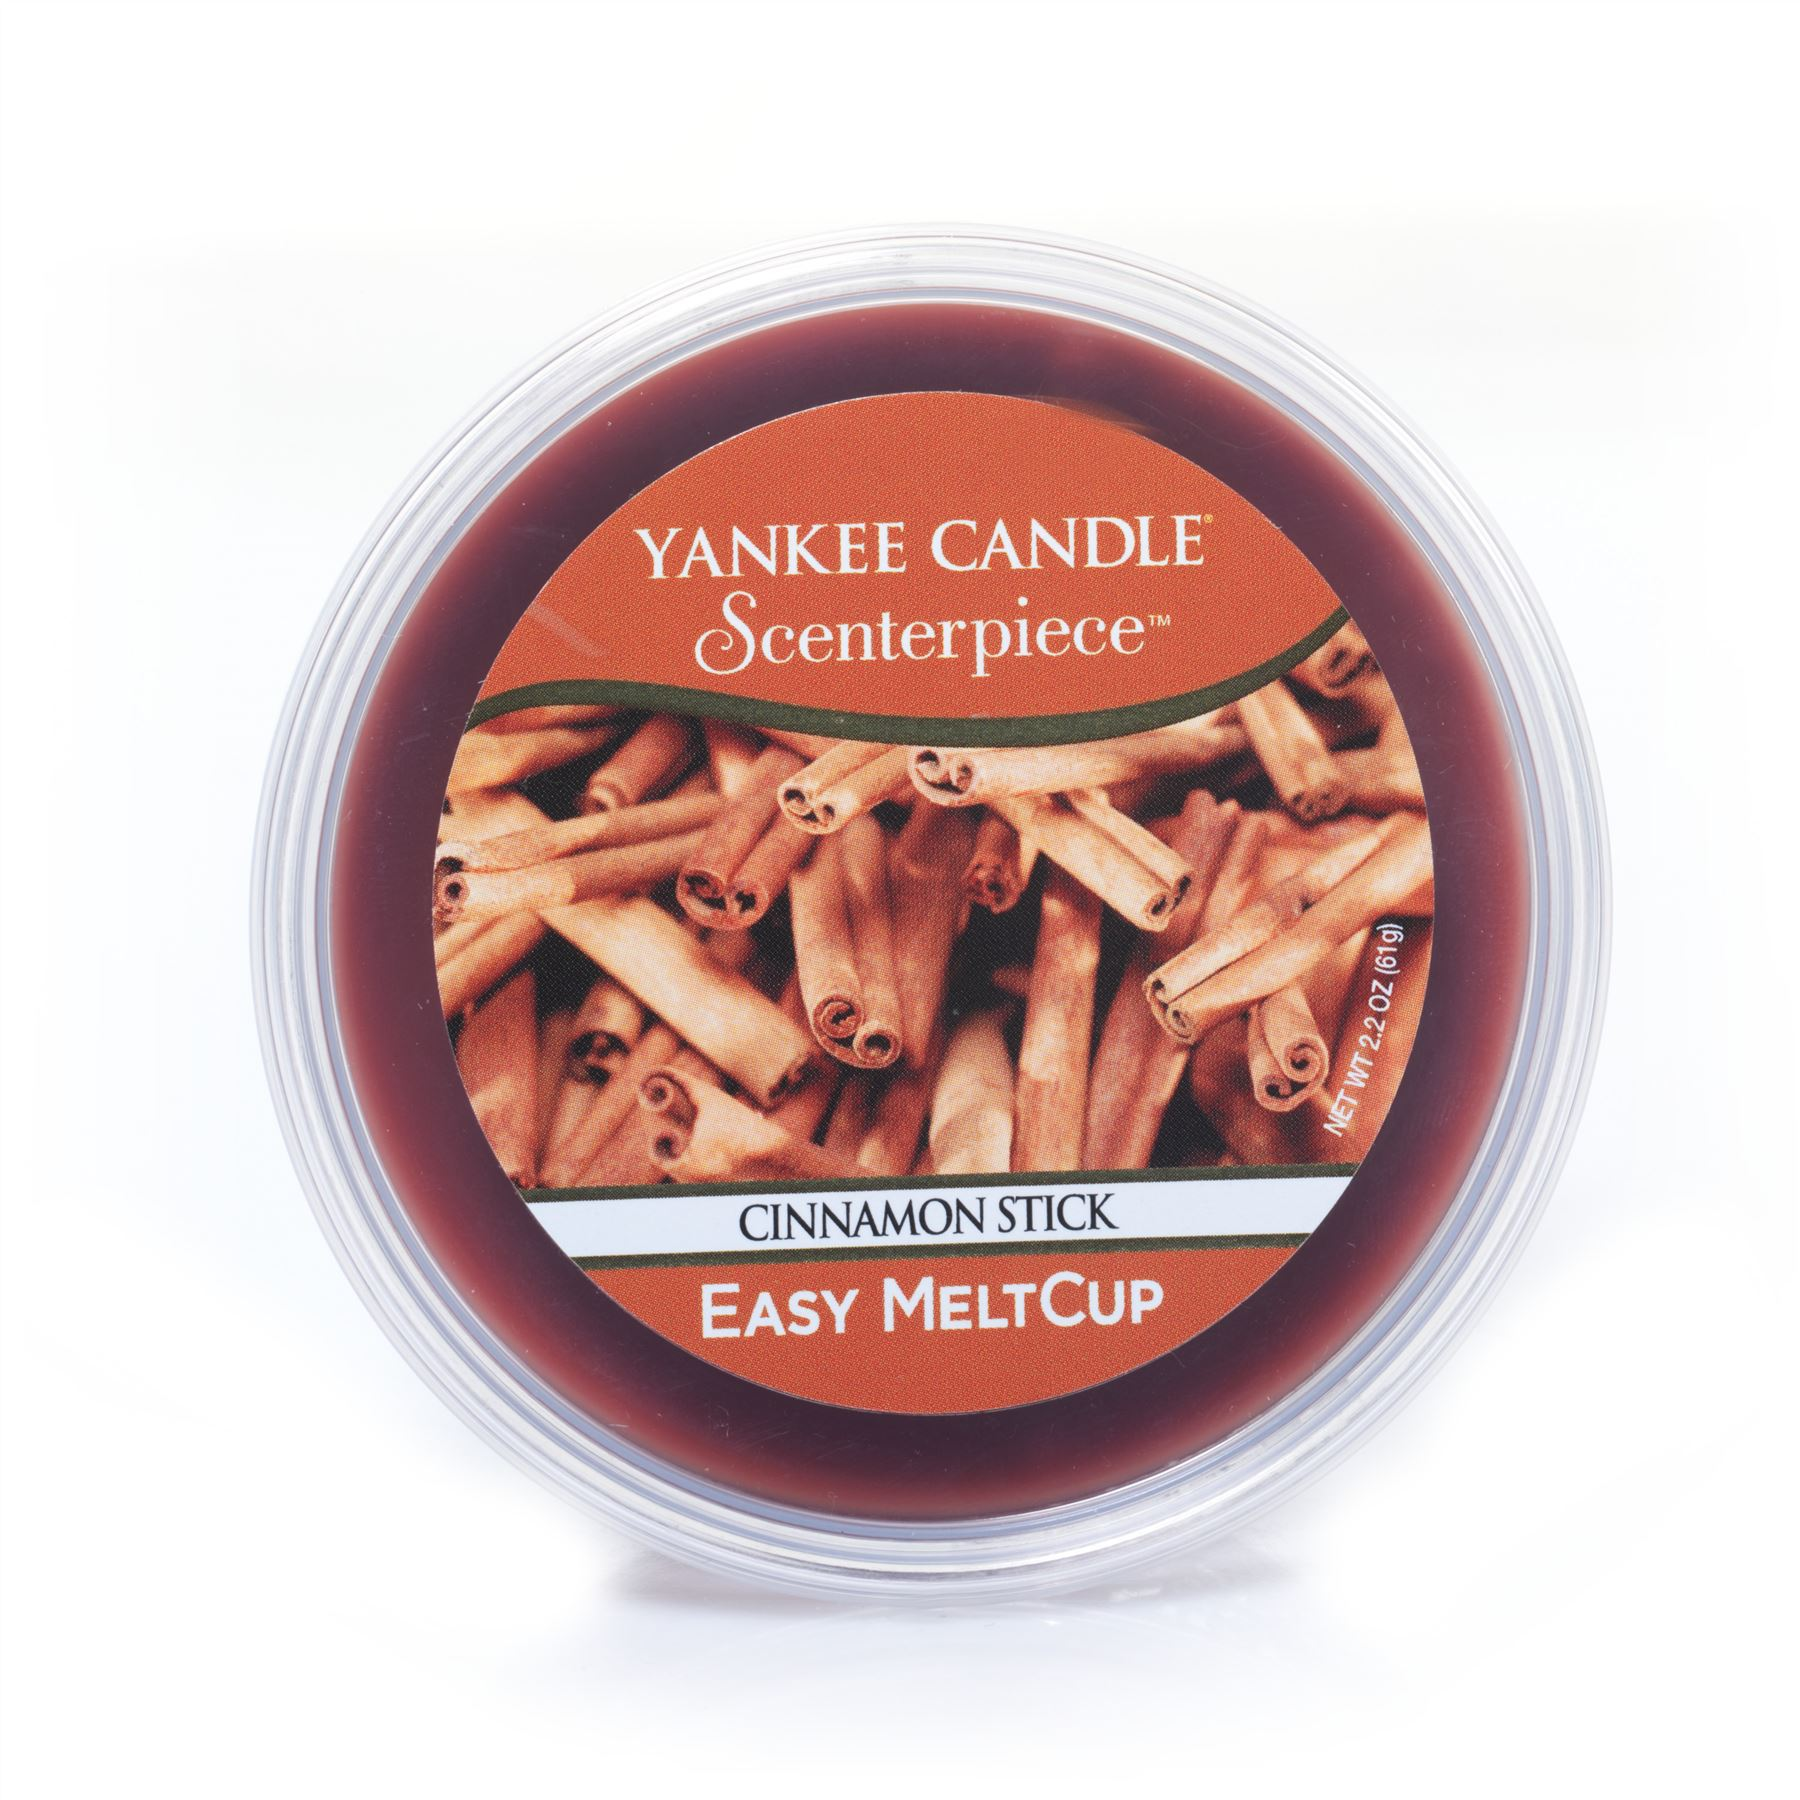 Yankee candle new scenterpiece melt cup all scent s